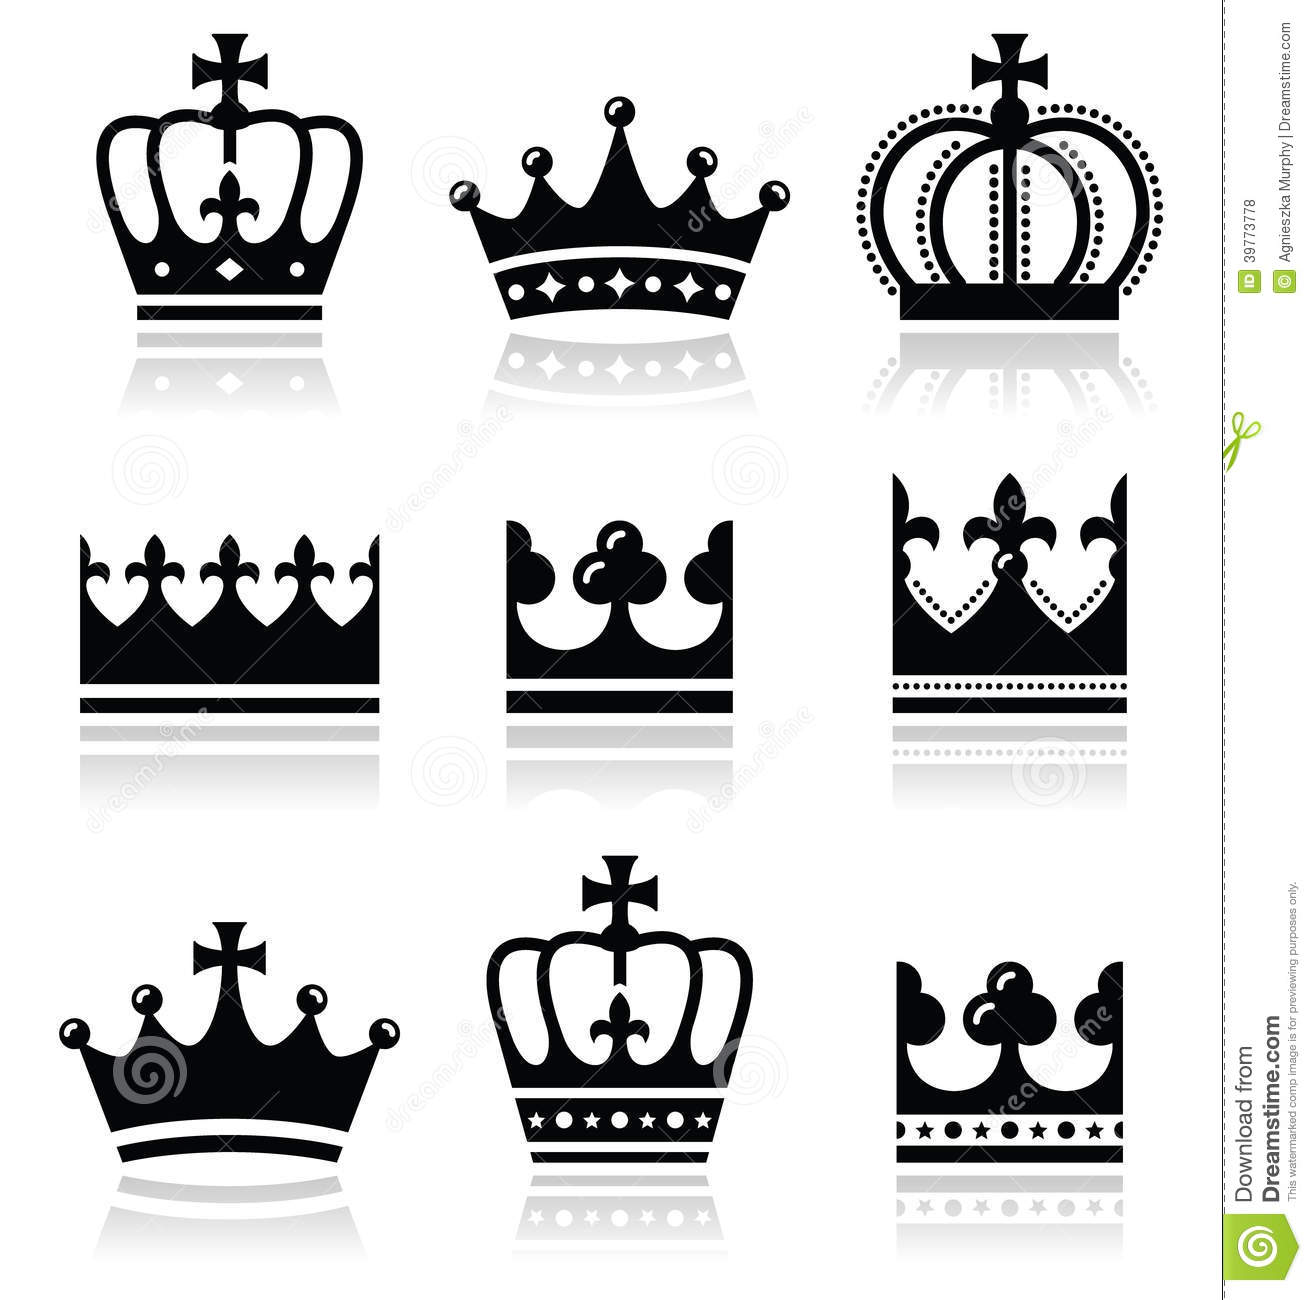 Black King And Queen Clipart 49 King And Queen Crown Clipart Black